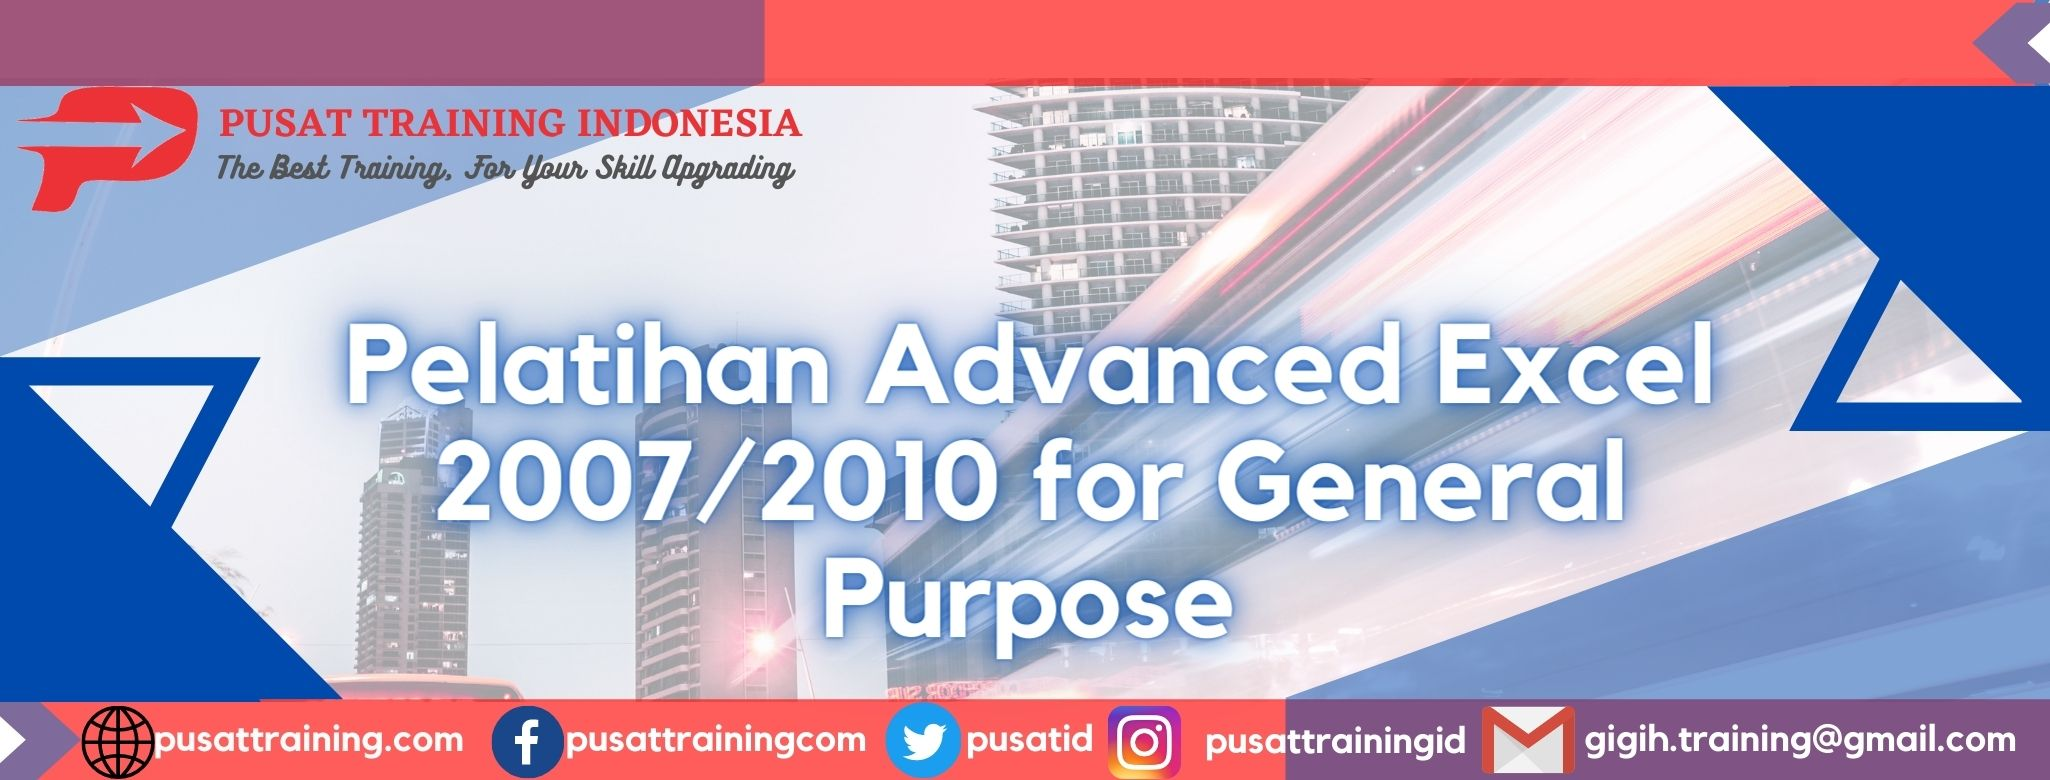 Pelatihan-Advanced-Excel-2007_2010-for-General-Purpose